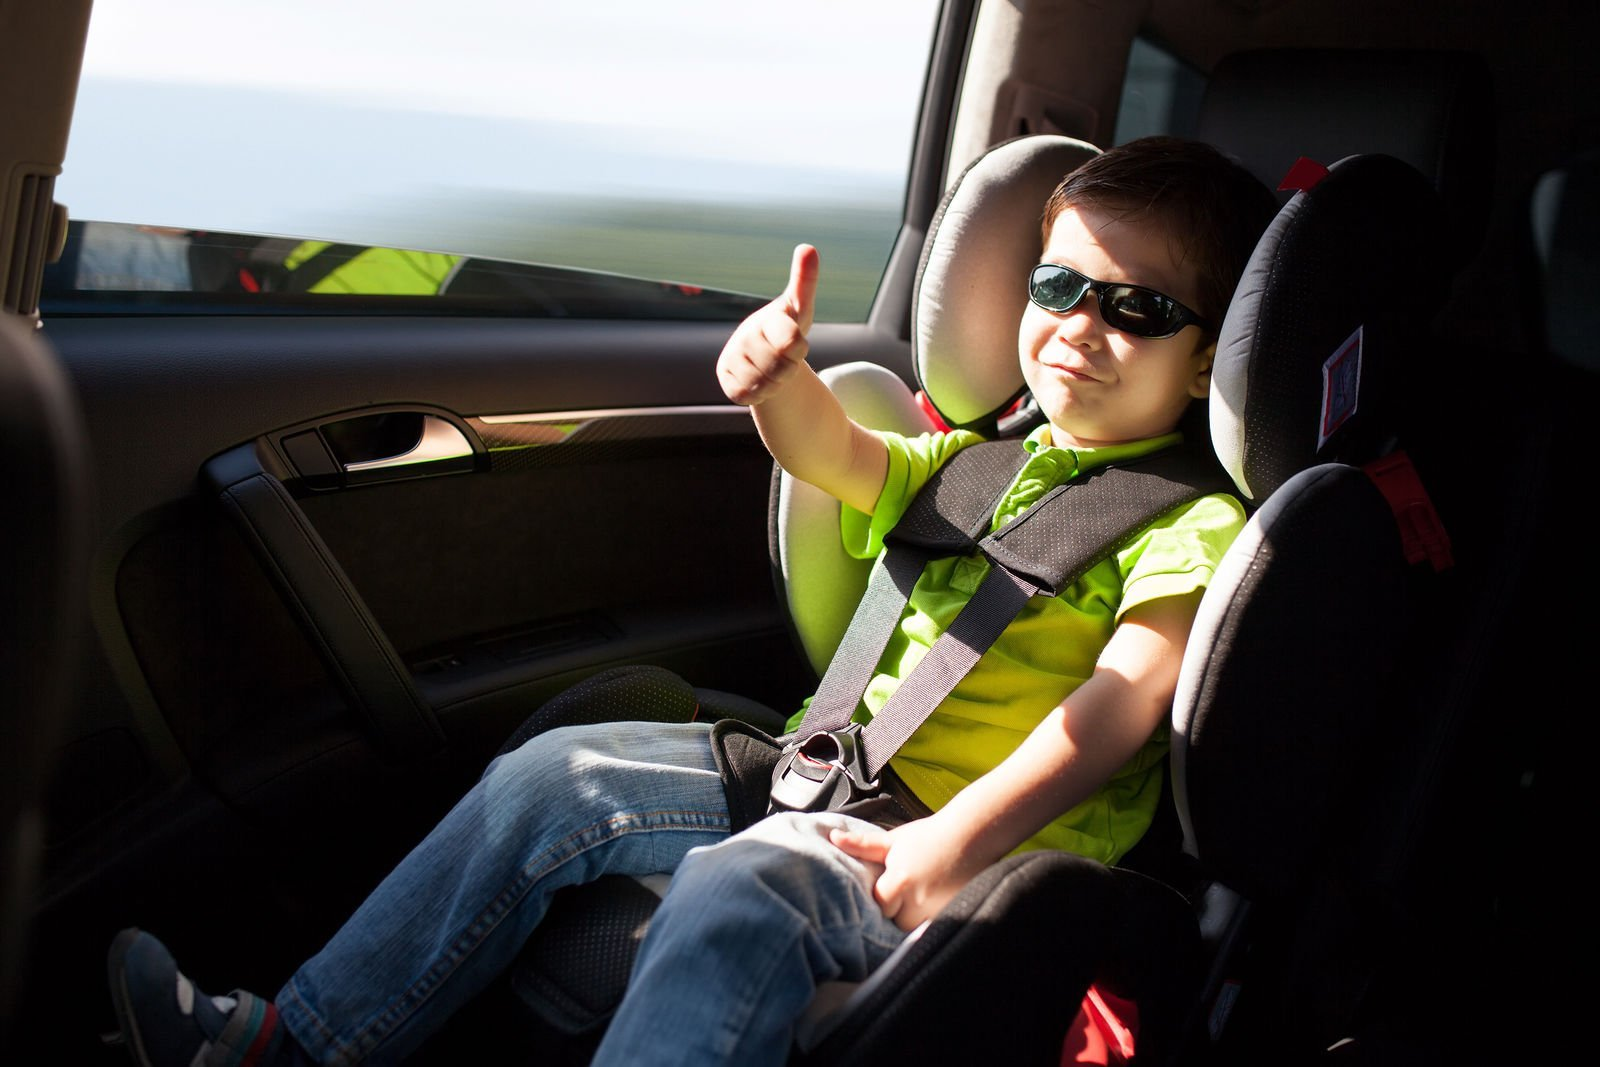 Massachusetts Car Seat Laws Require Any Child Under Eight Years Of Age Or 52 Inches Tall To Ride In A Federally Approved For Their Protection